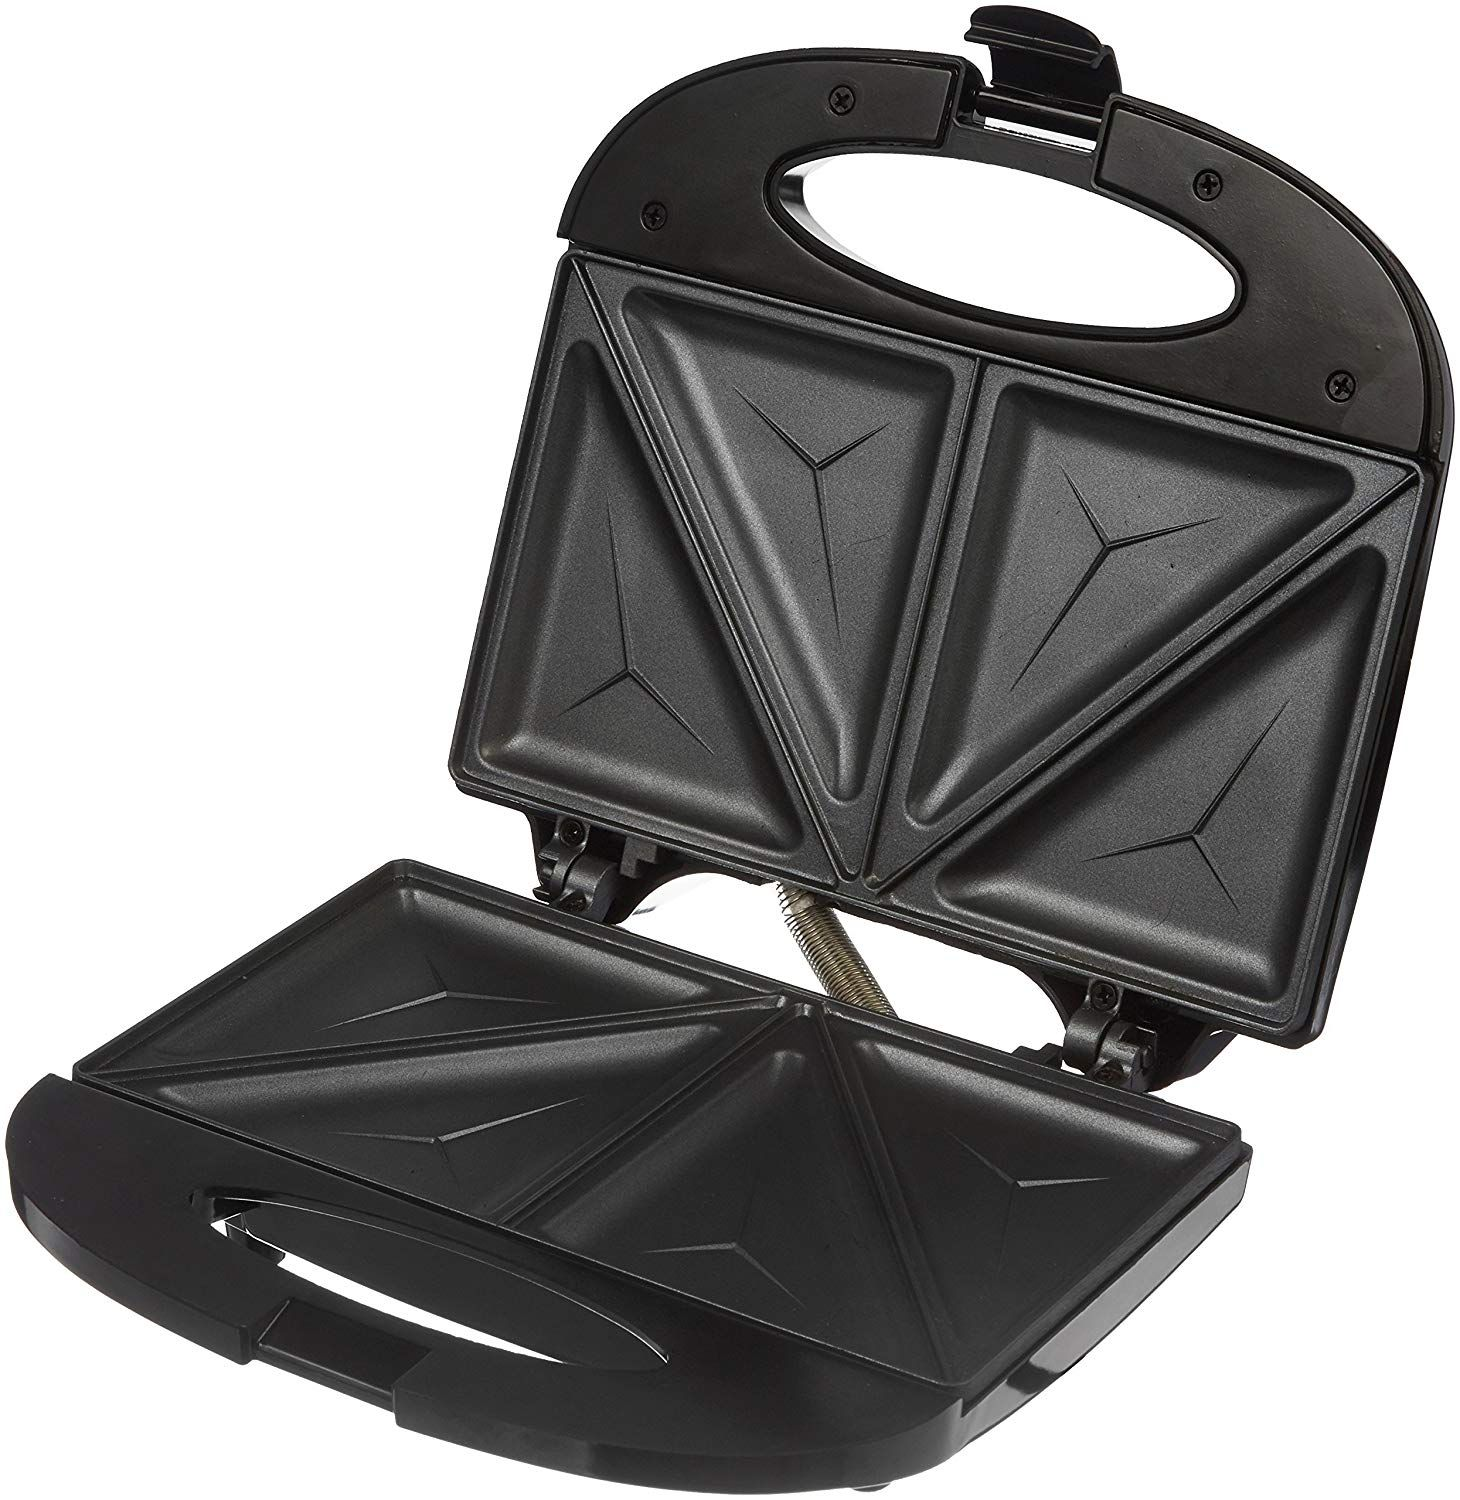 Amazon Brand - Solimo Non-Stick Sandwich Maker (750 watt, Black) at Rs. 899